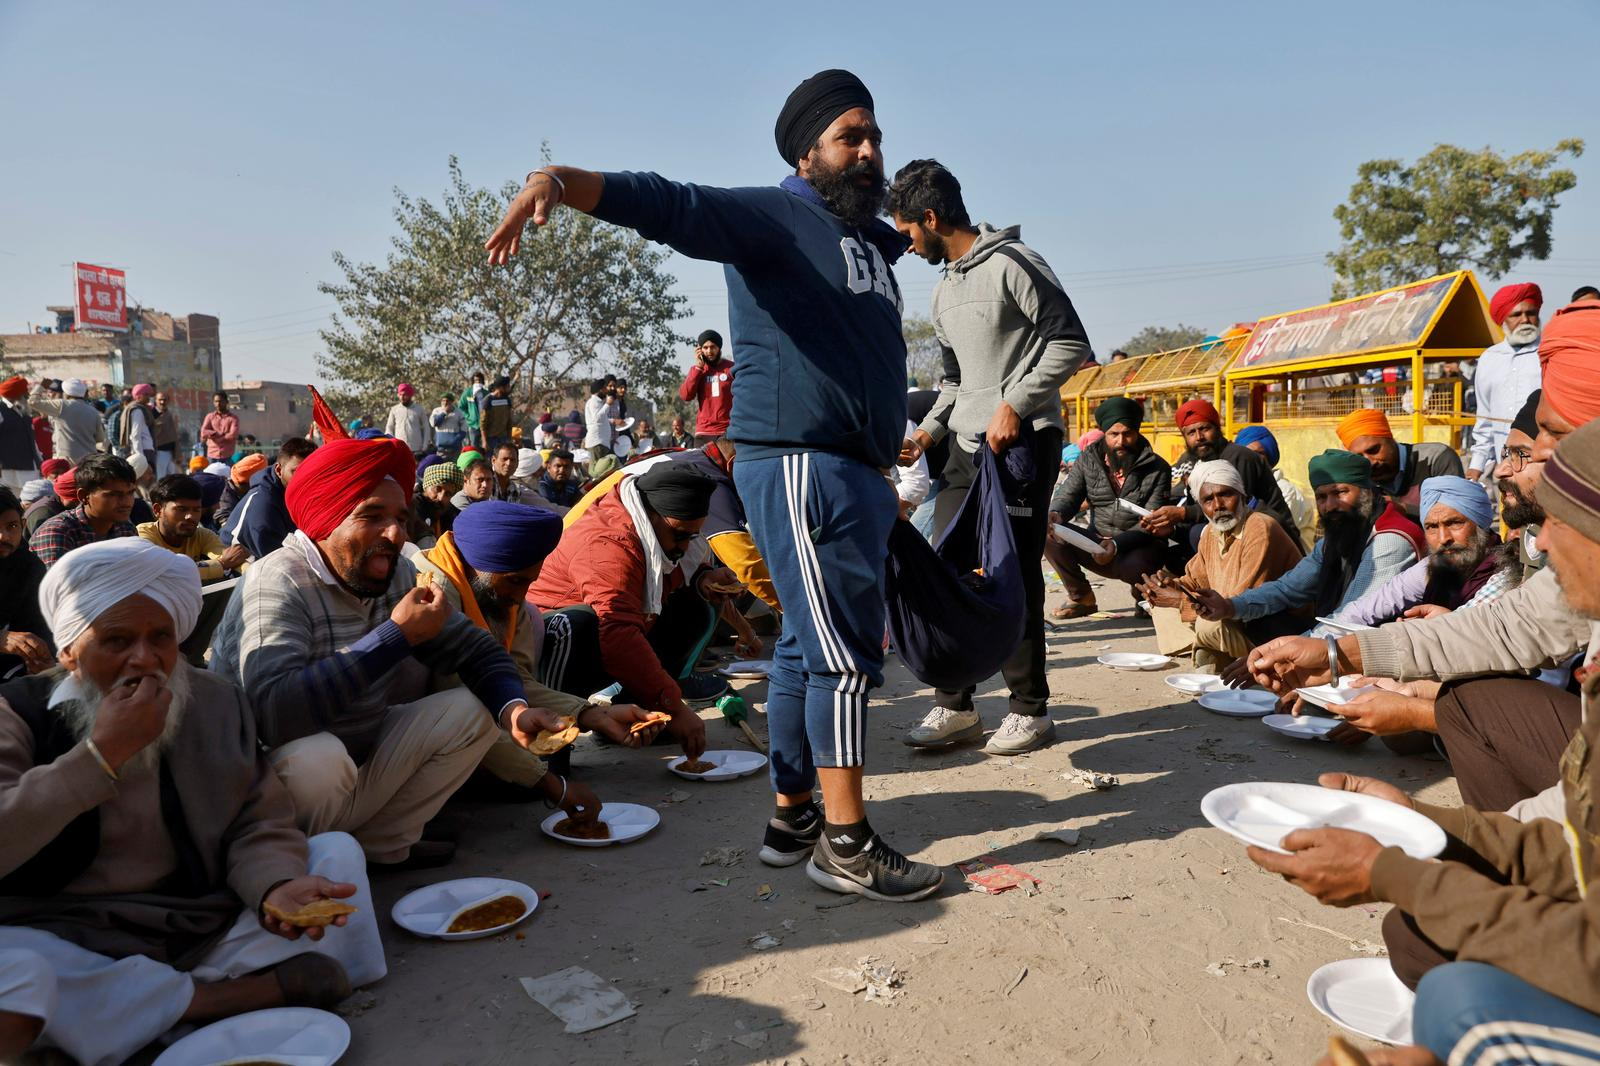 Farmers have their meal at a site of a protest against the newly passed farm bills at Singhu border near Delhi, India, November 28, 2020. Photo: Reuters